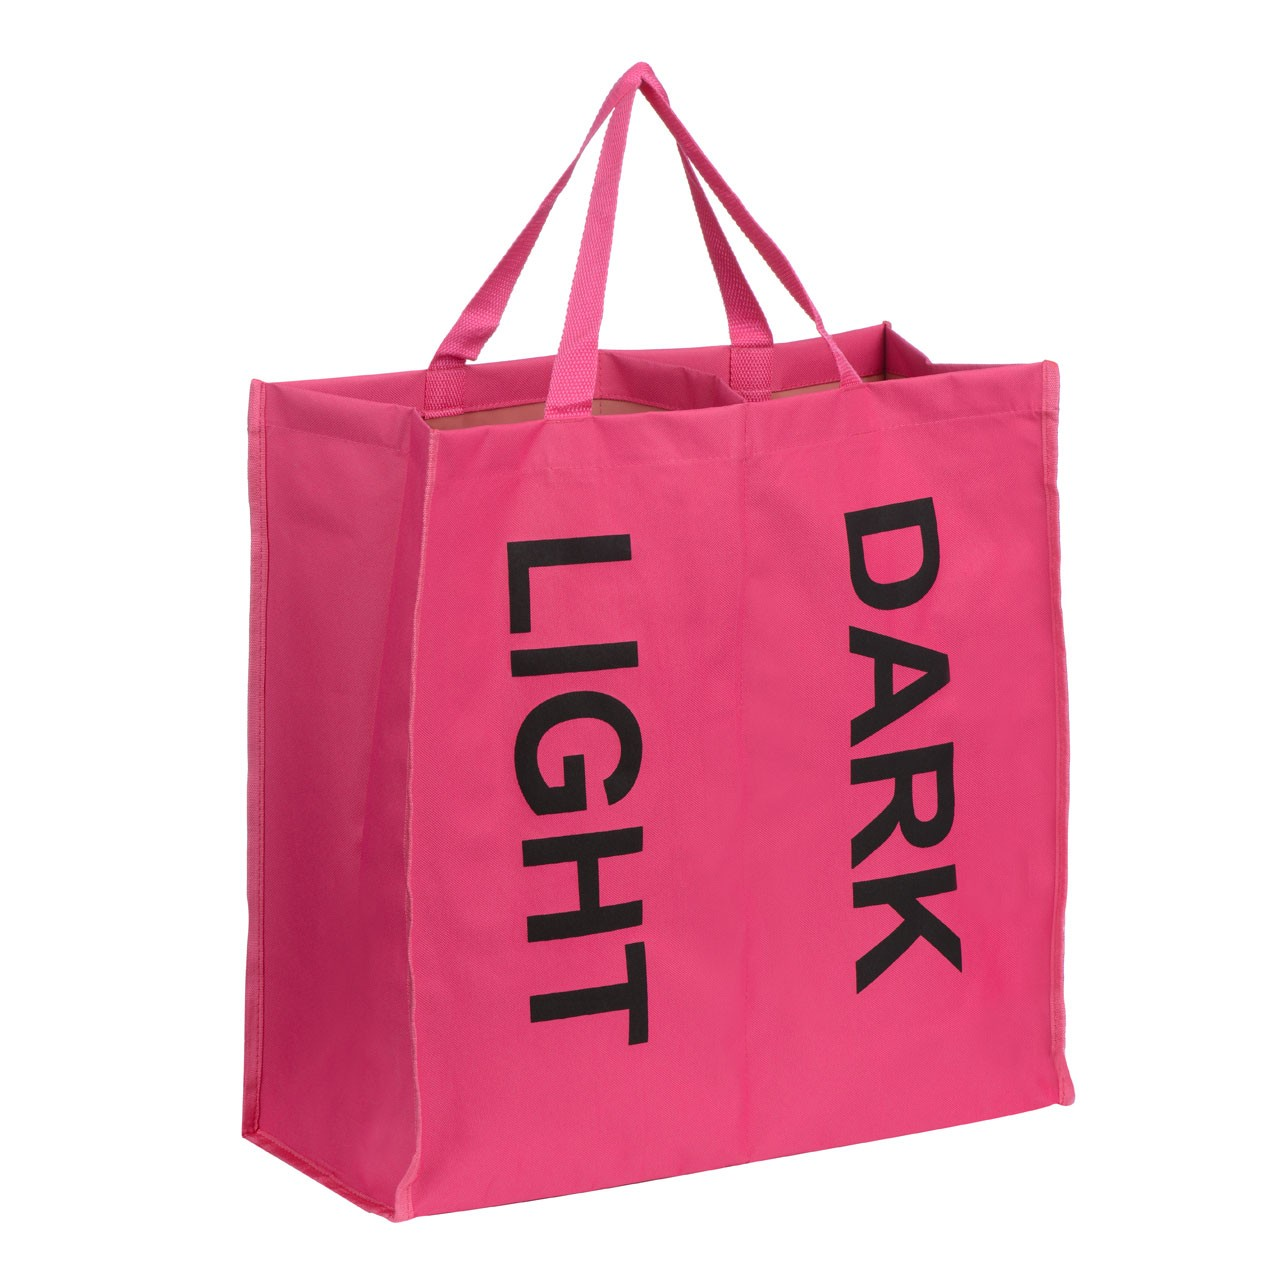 Prime Furnishing 2 Section Polyester Laundry Bag - Hot Pink